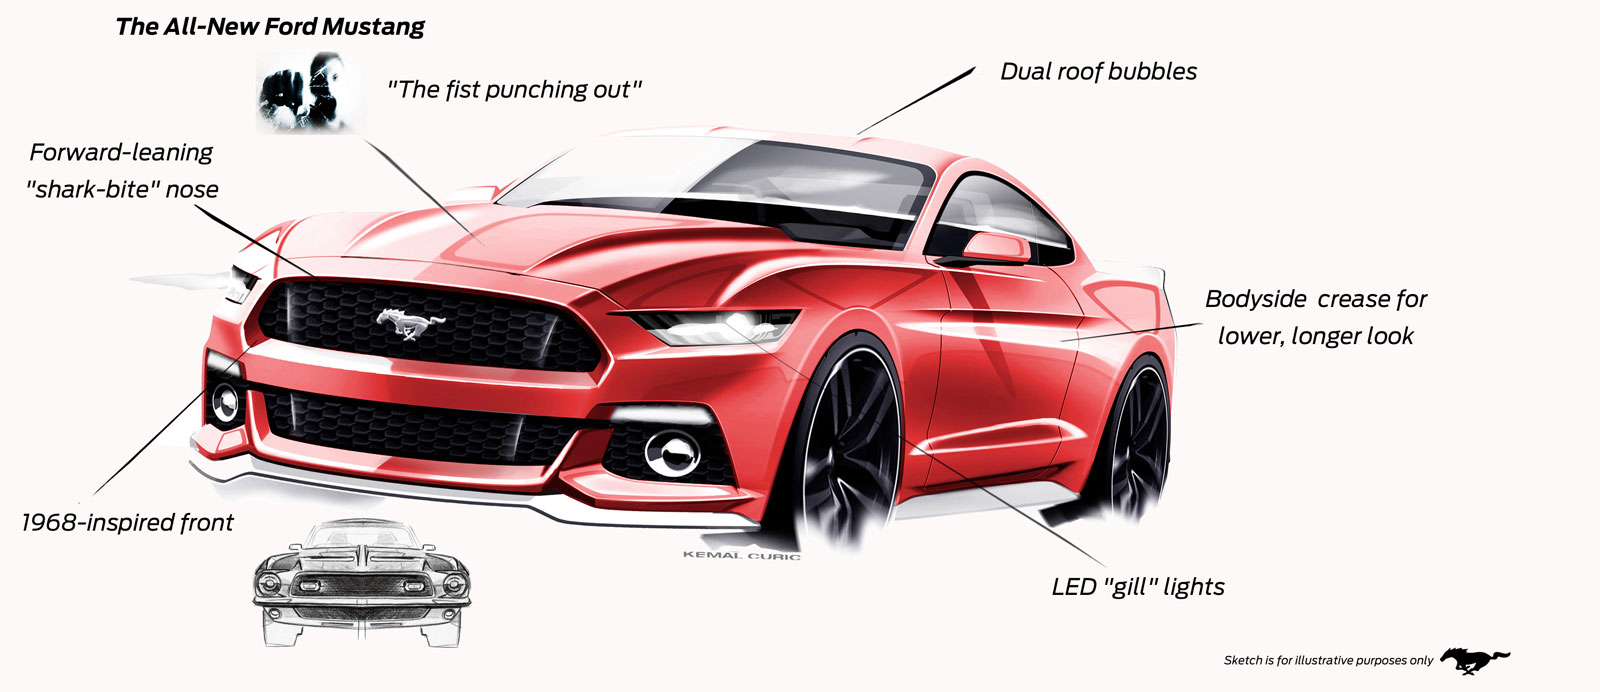 ford mustang exterior design elements car body design